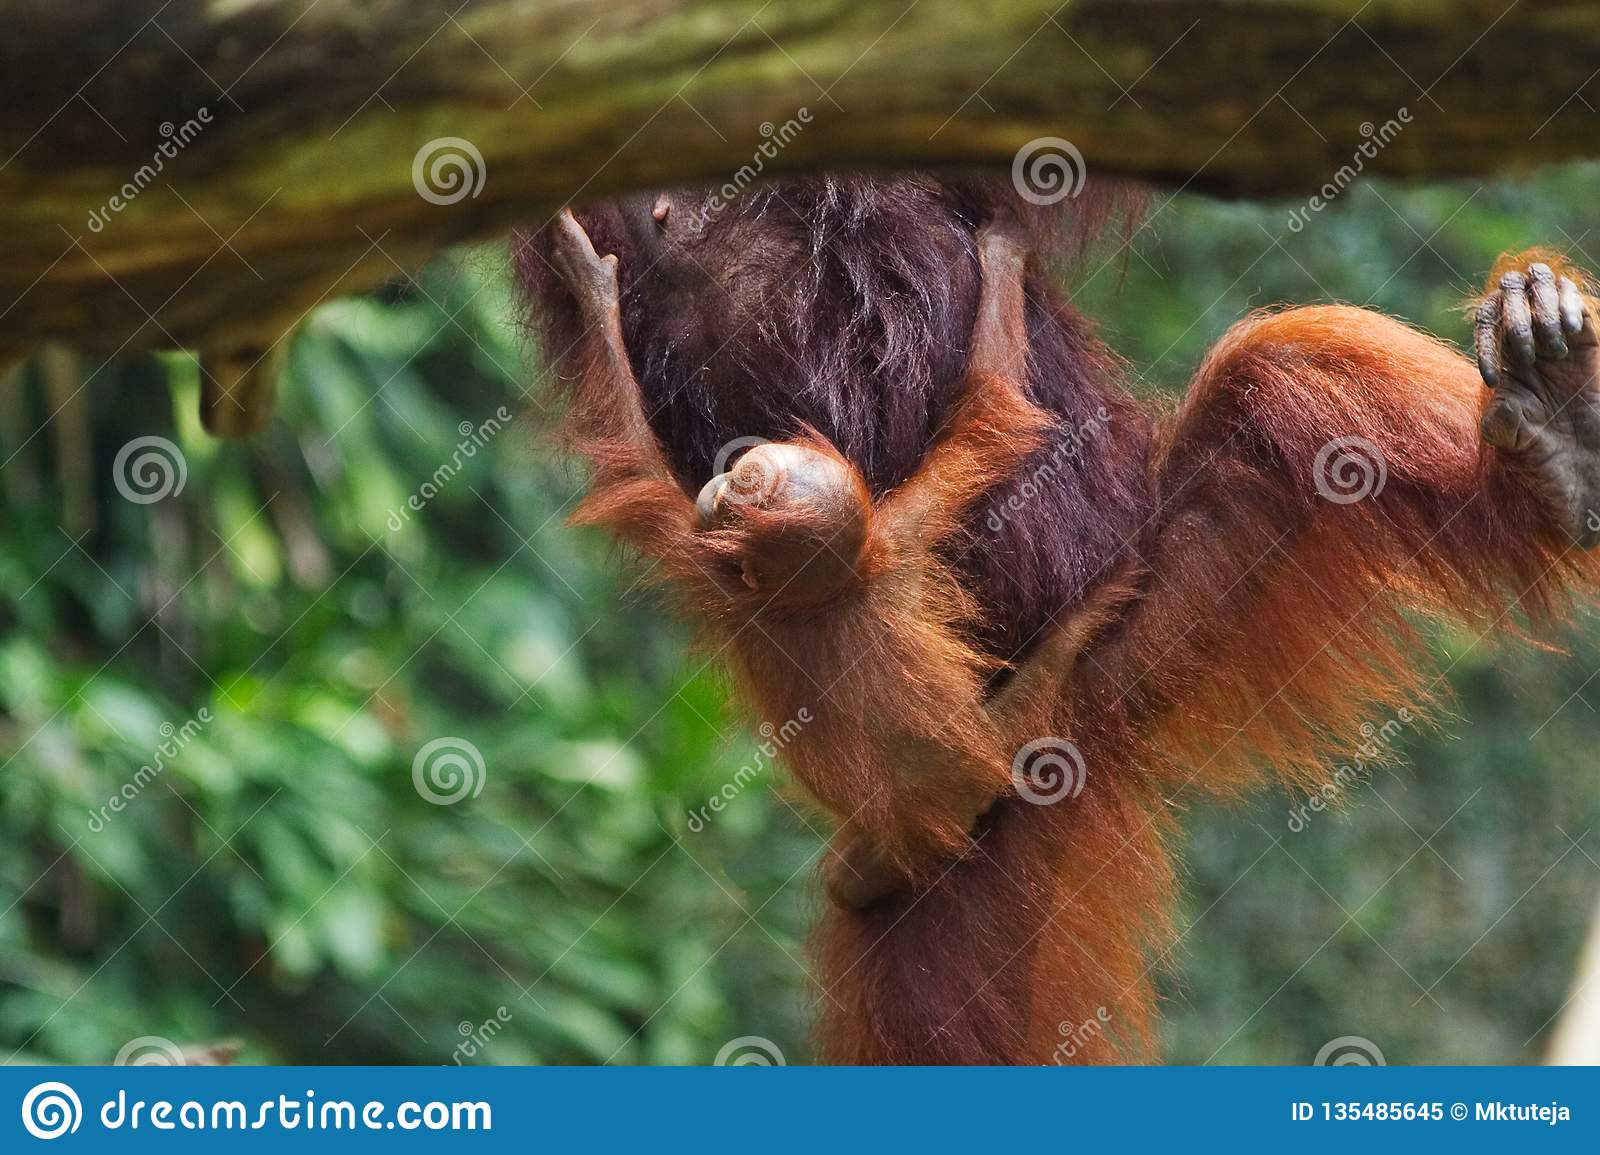 Baby orangutan holding mothers belly while mother jumps from tree to tree